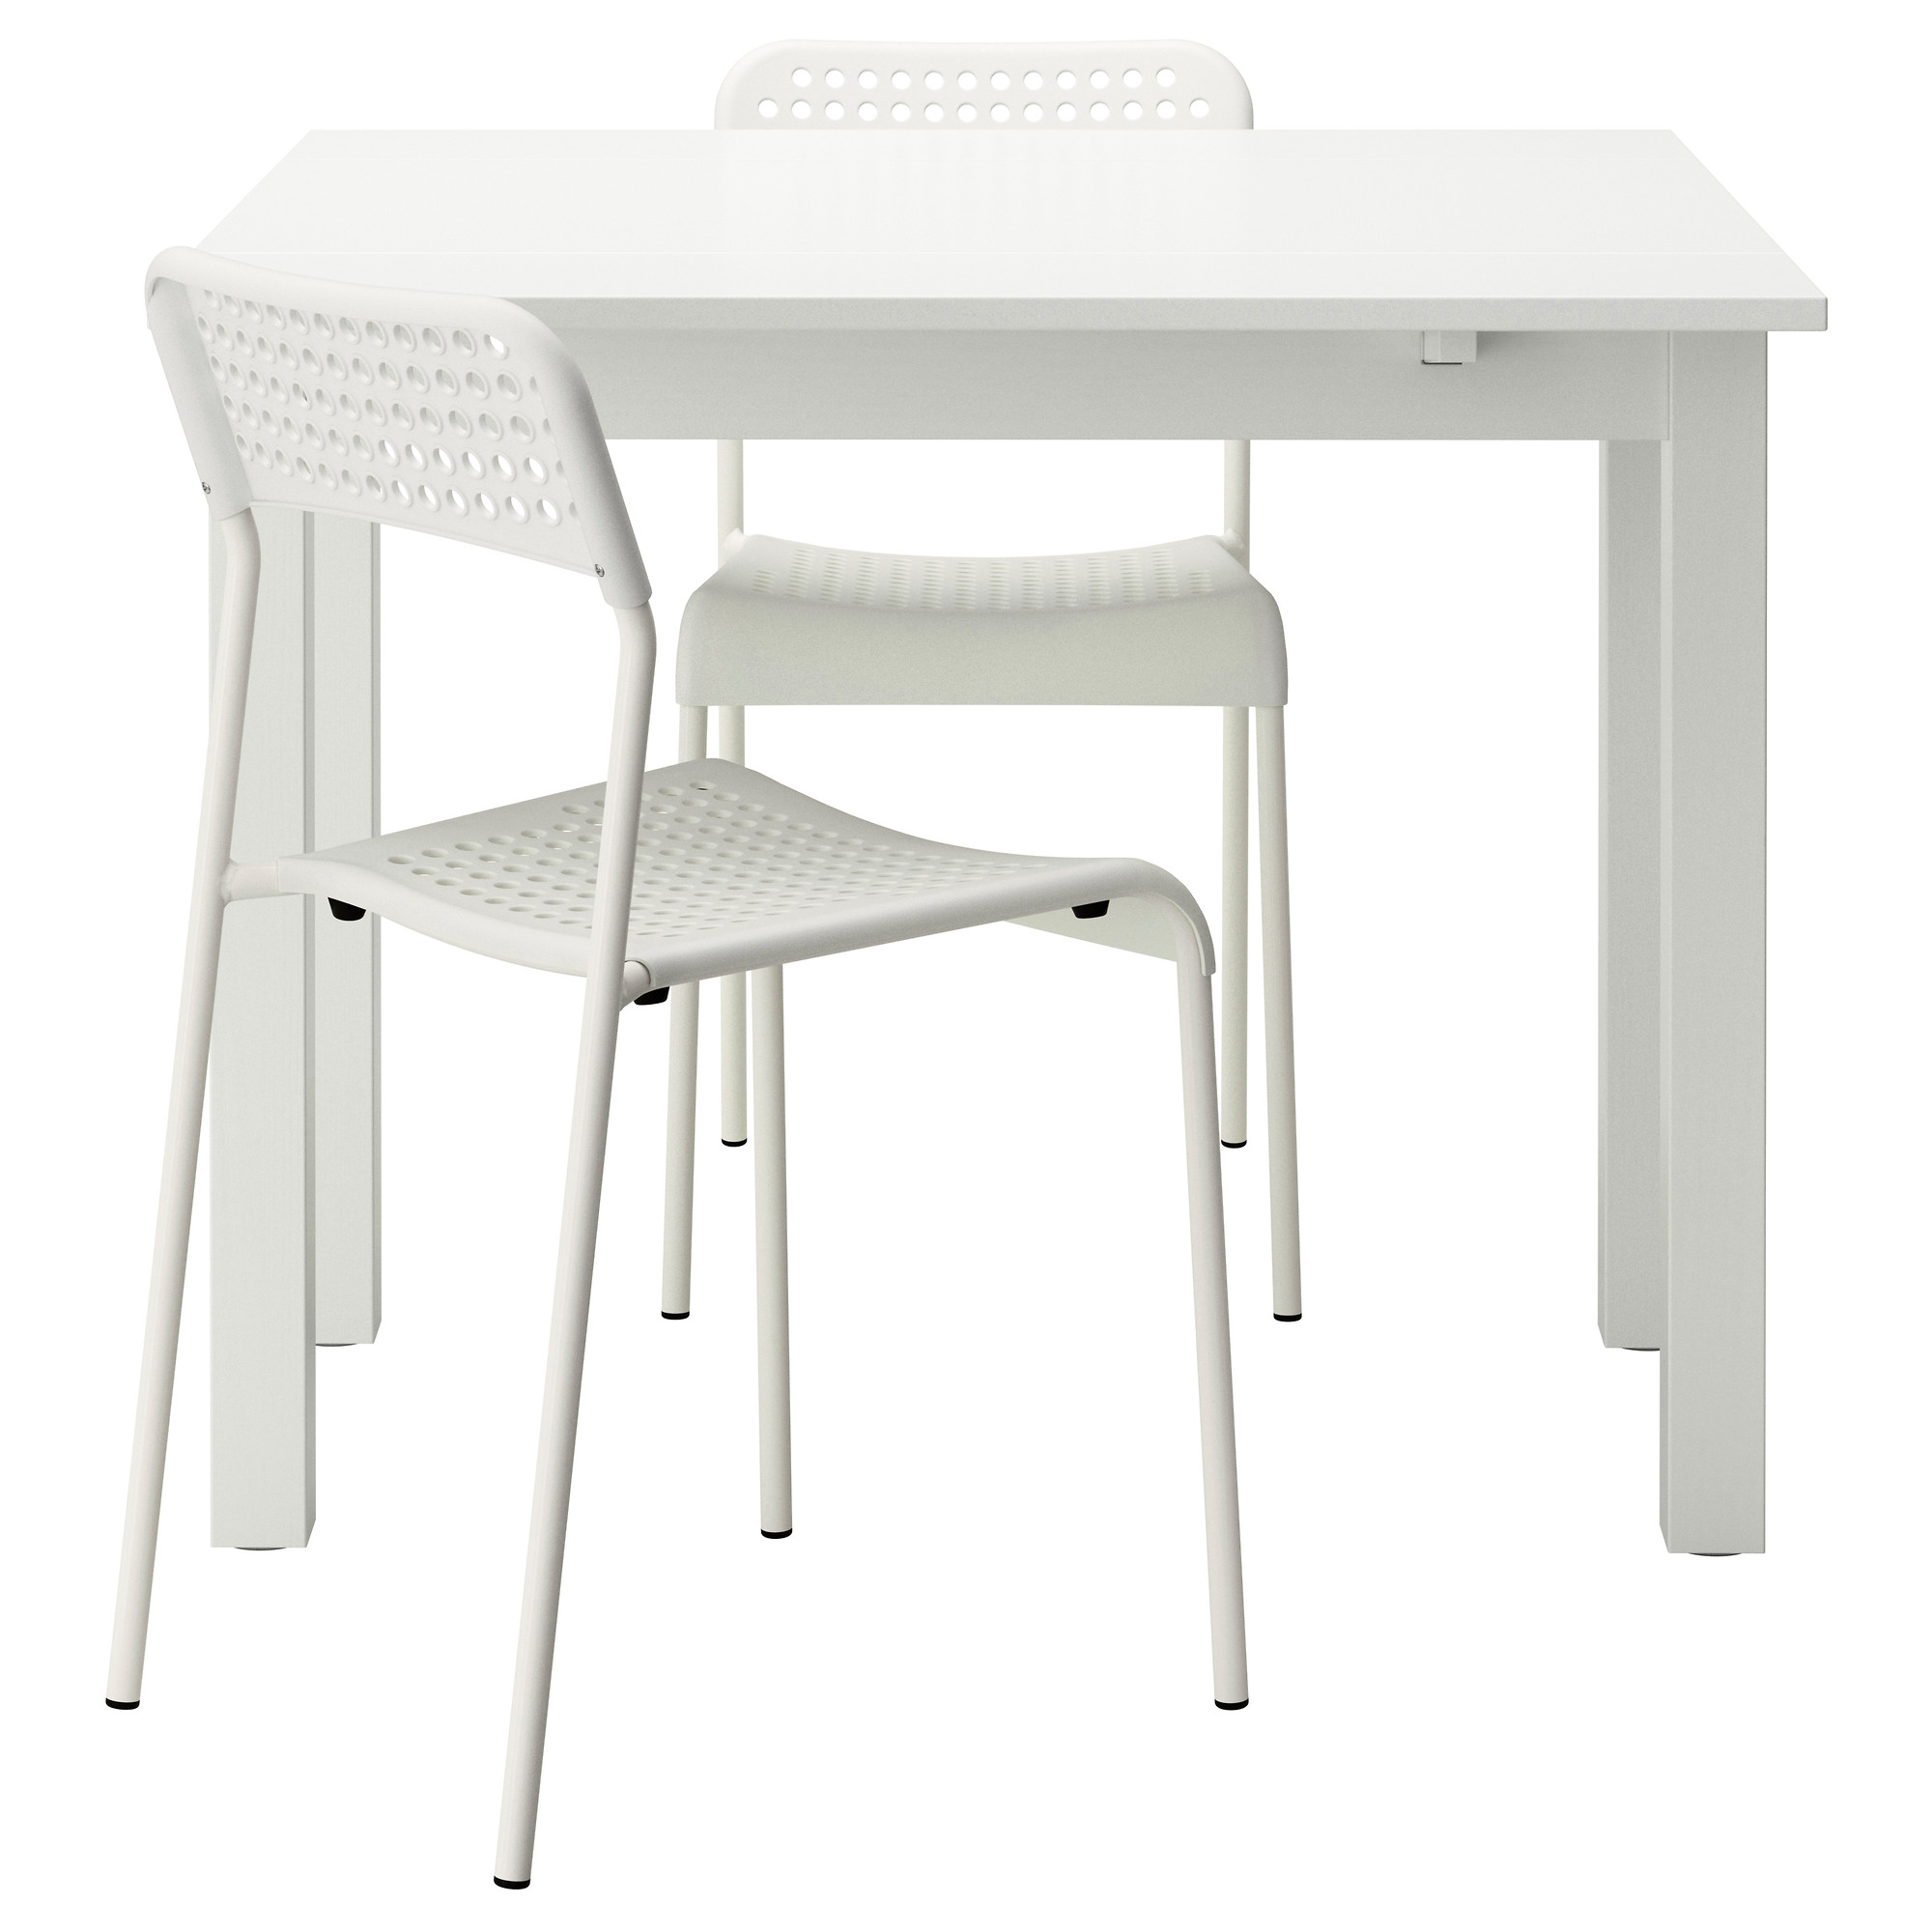 Table et chaise de cuisine ikea table chaise cuisine for Table de cuisine